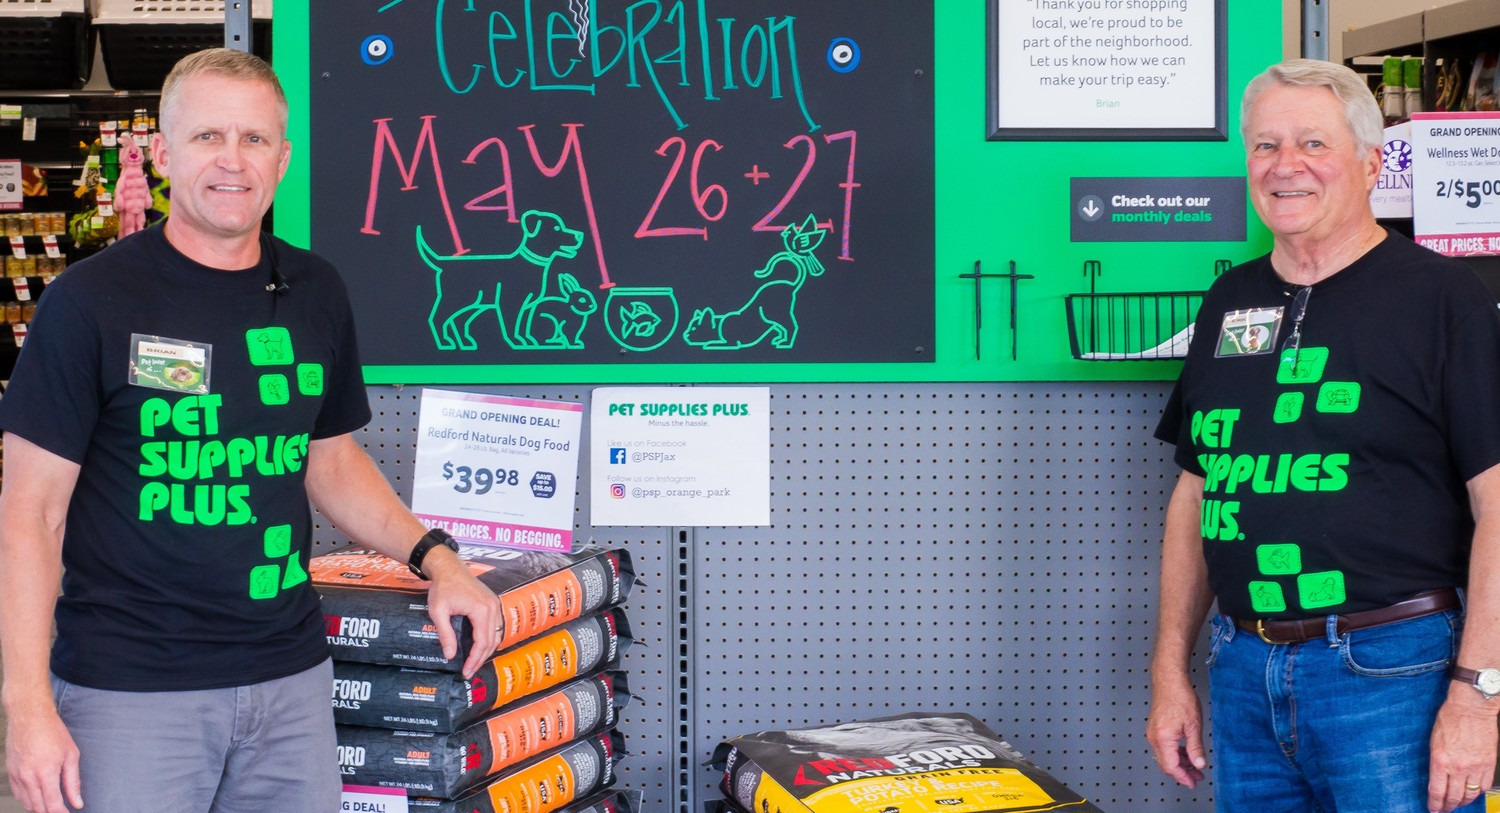 Brian Rolf, left, and his father Eric Rolf, had dreamt about going to business together for years and have done so by co-ownership of two Pet Supplies Plus stores. On May 26, the duo opened its second store on Blanding Boulevard near Orange Park.